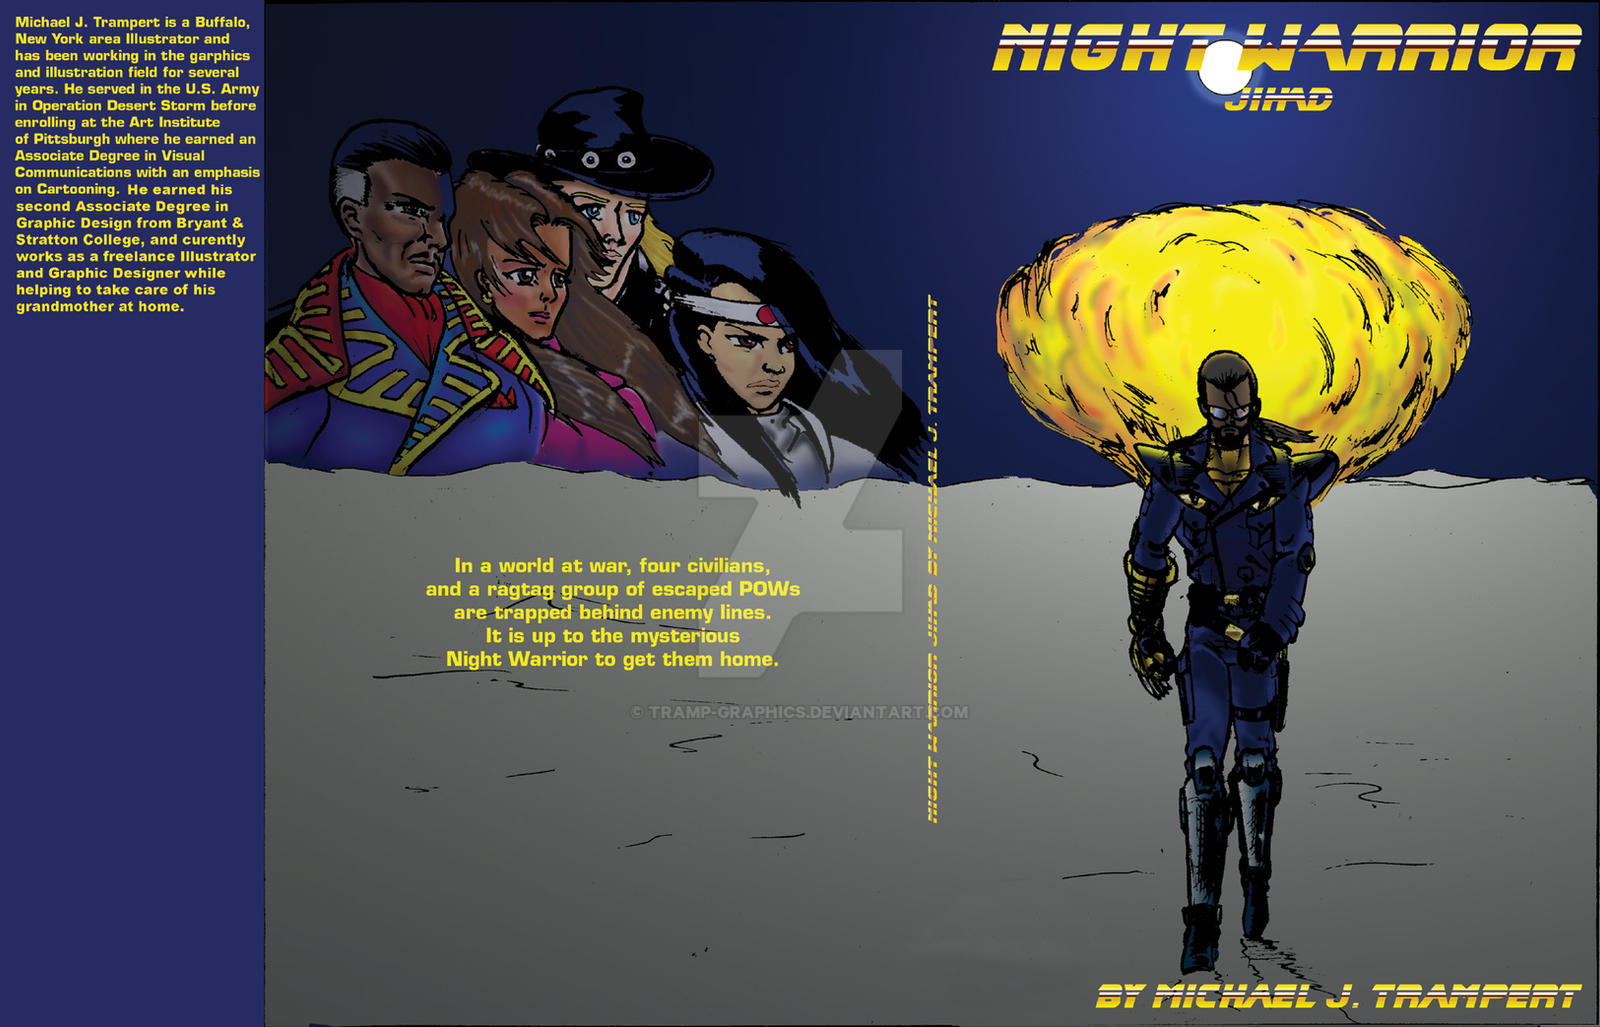 Night Warrior cover